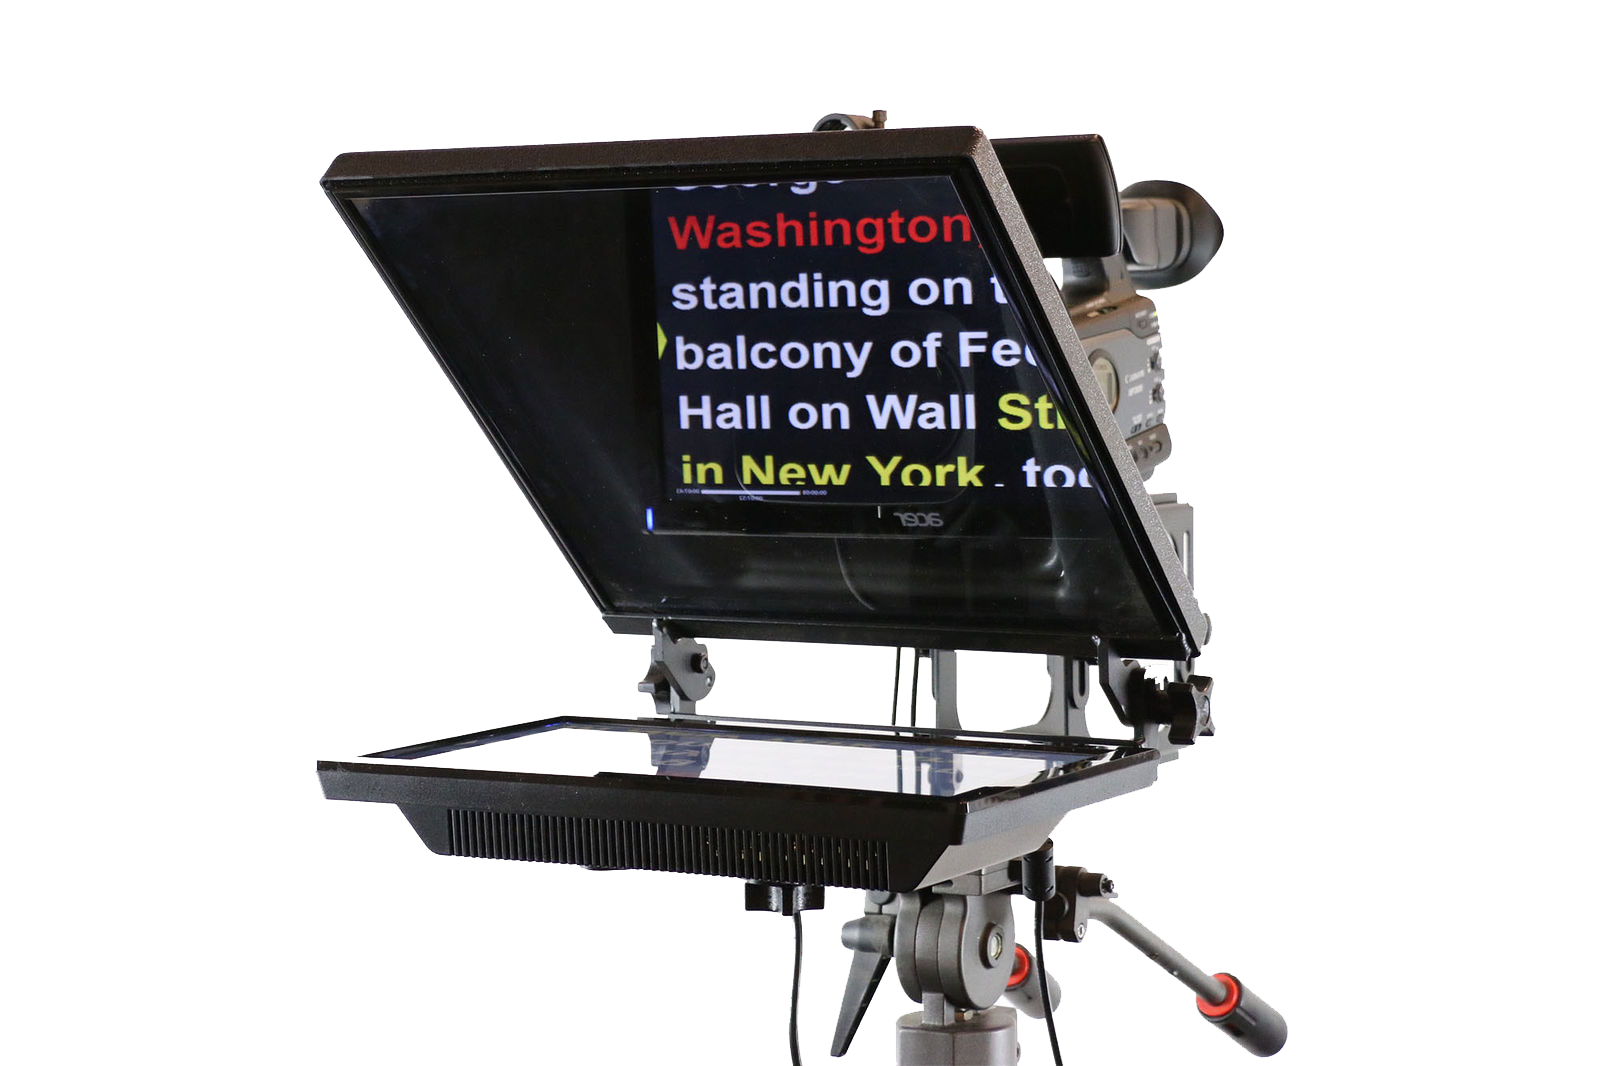 Phoenix on camera teleprompter mount